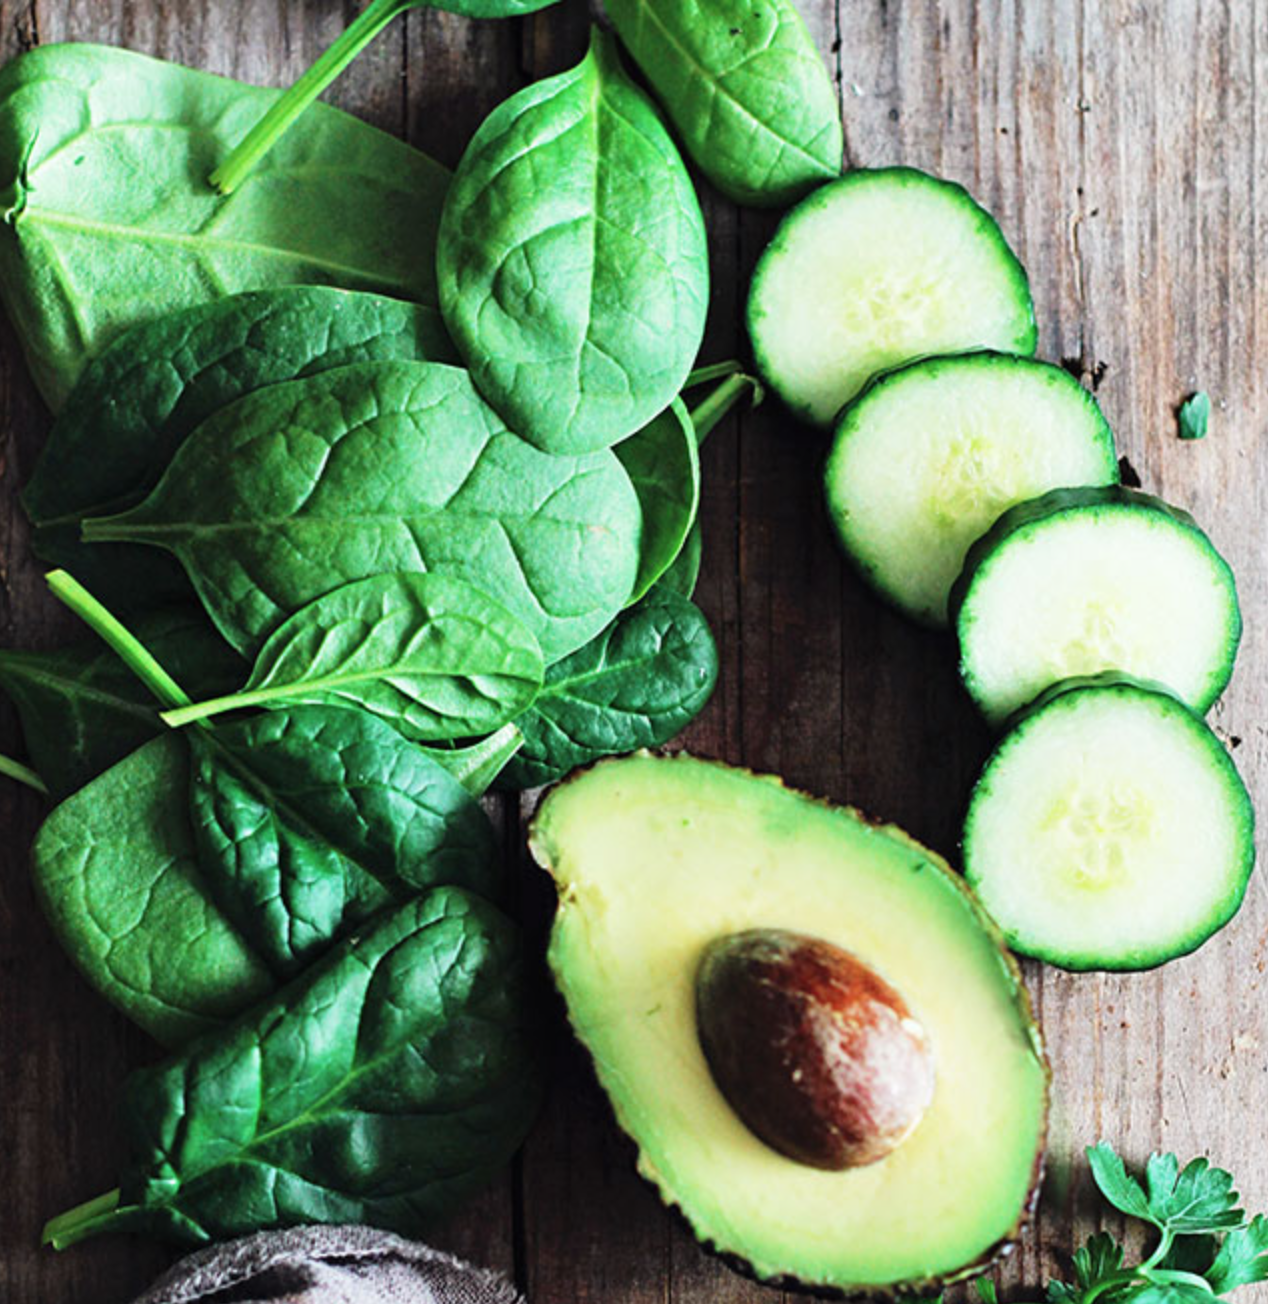 Foods That Will Naturally Detox and Cleanse Your Body